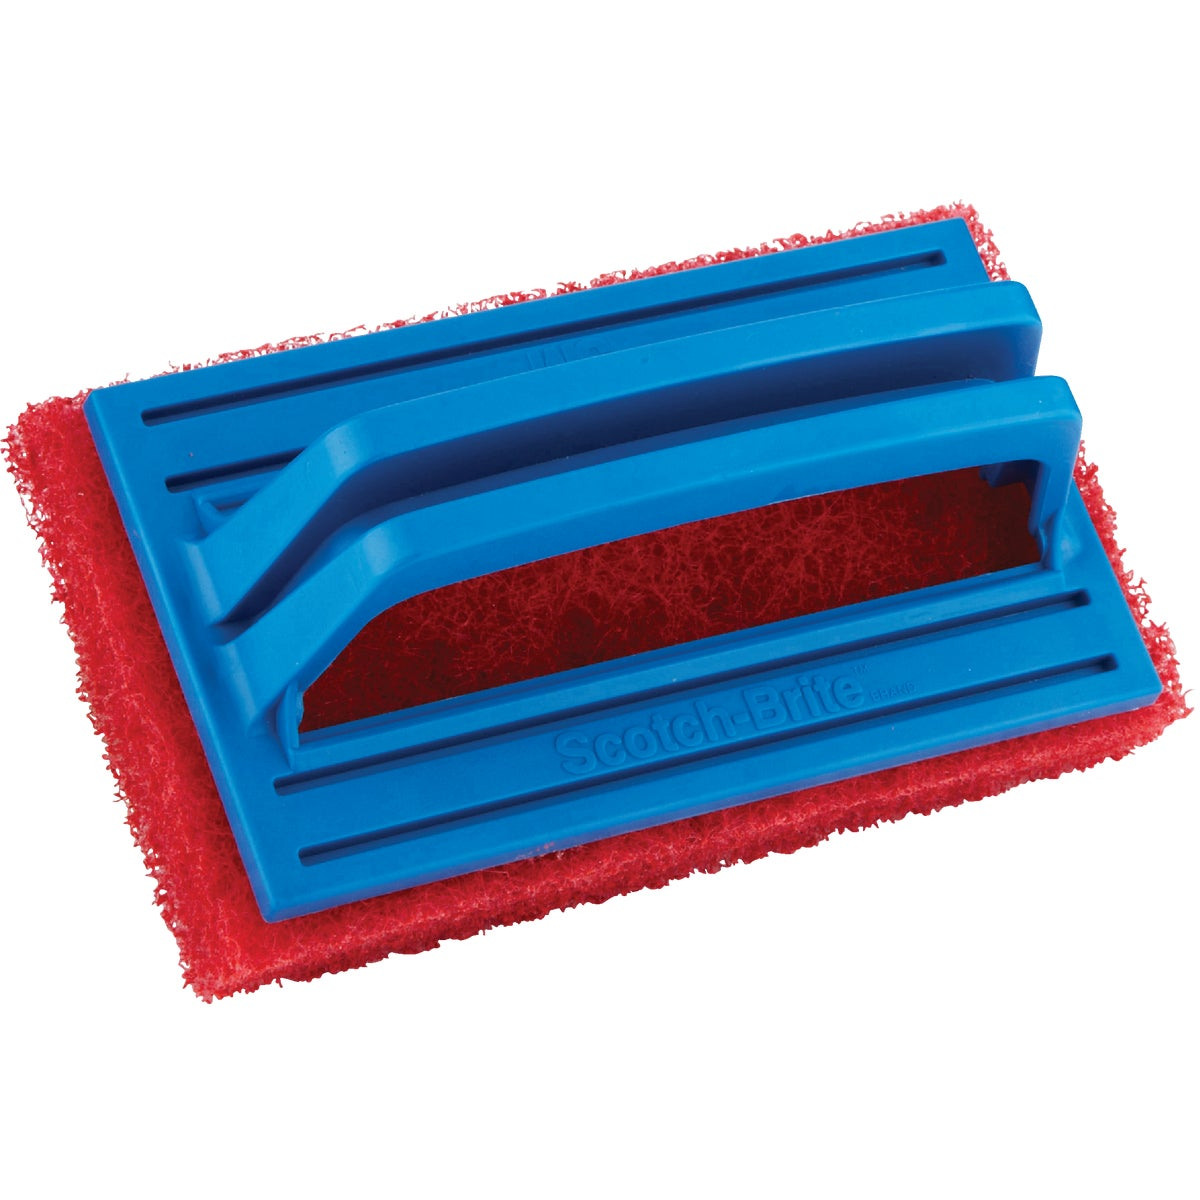 SCOTCHBRITE MED SCRUBBER - 7722 by 3m Co